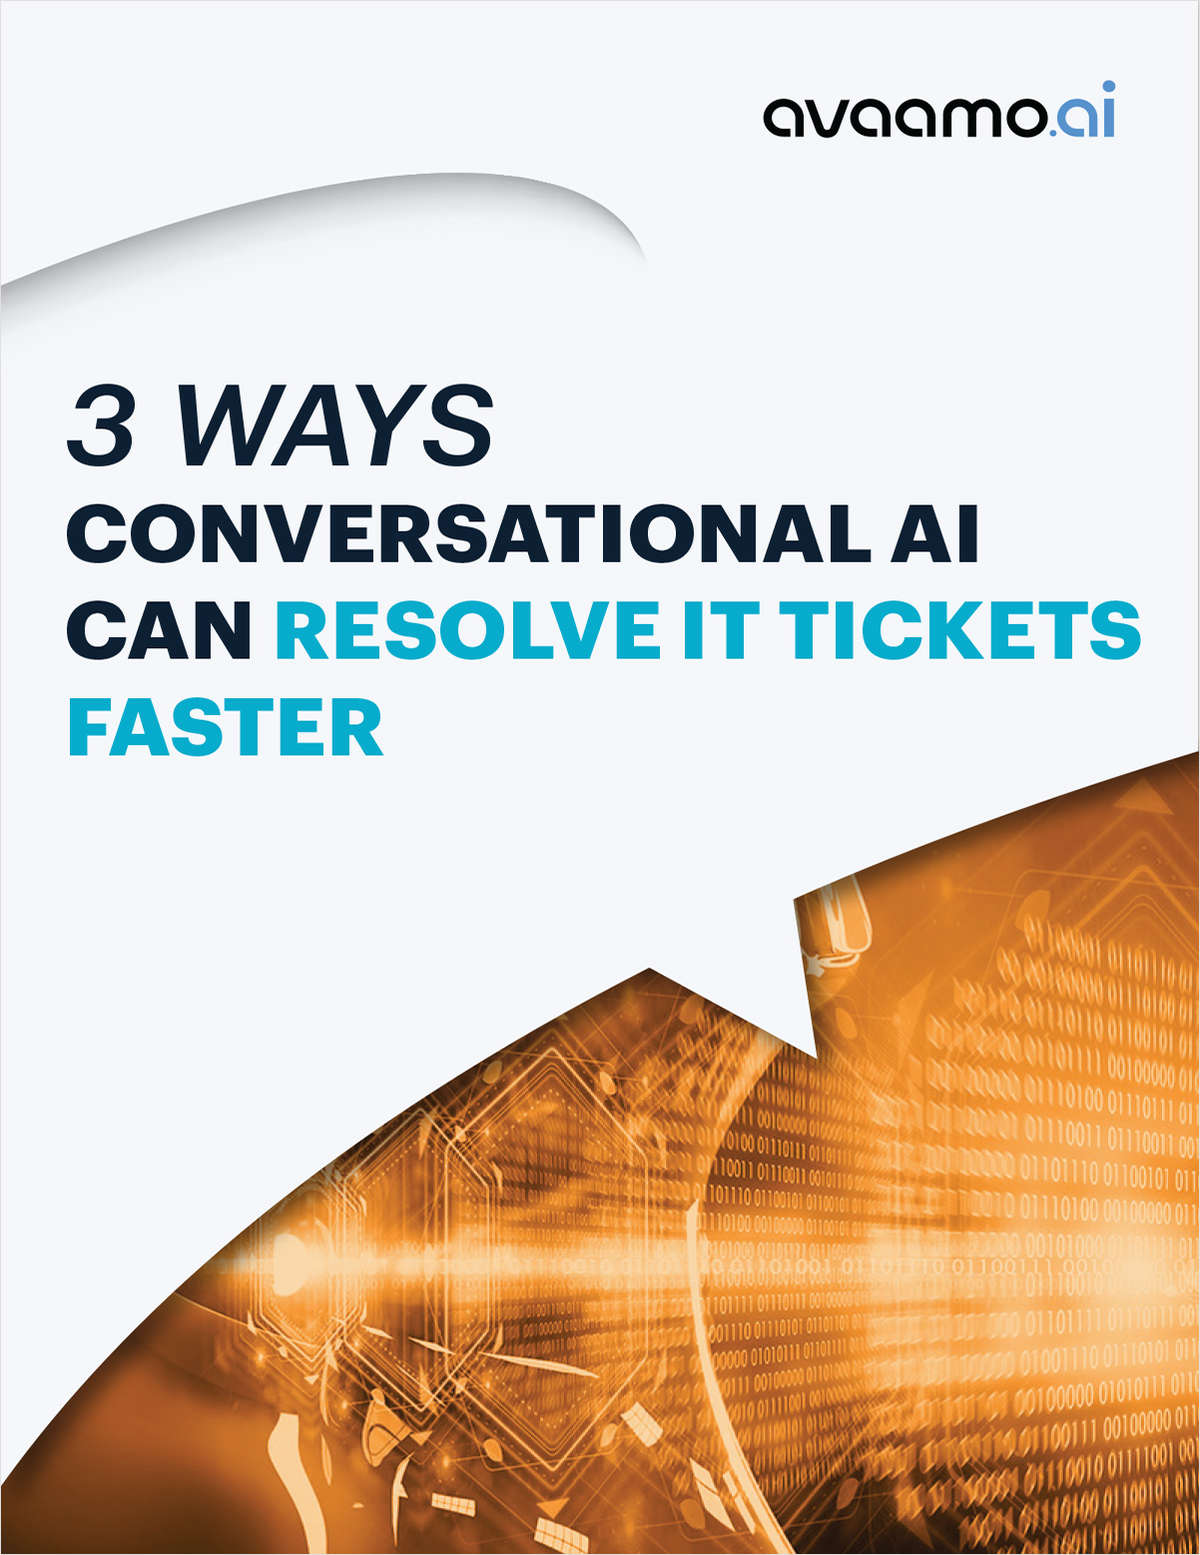 3 Ways Conversational AI Can Resolve Tickets Faster | eGuide